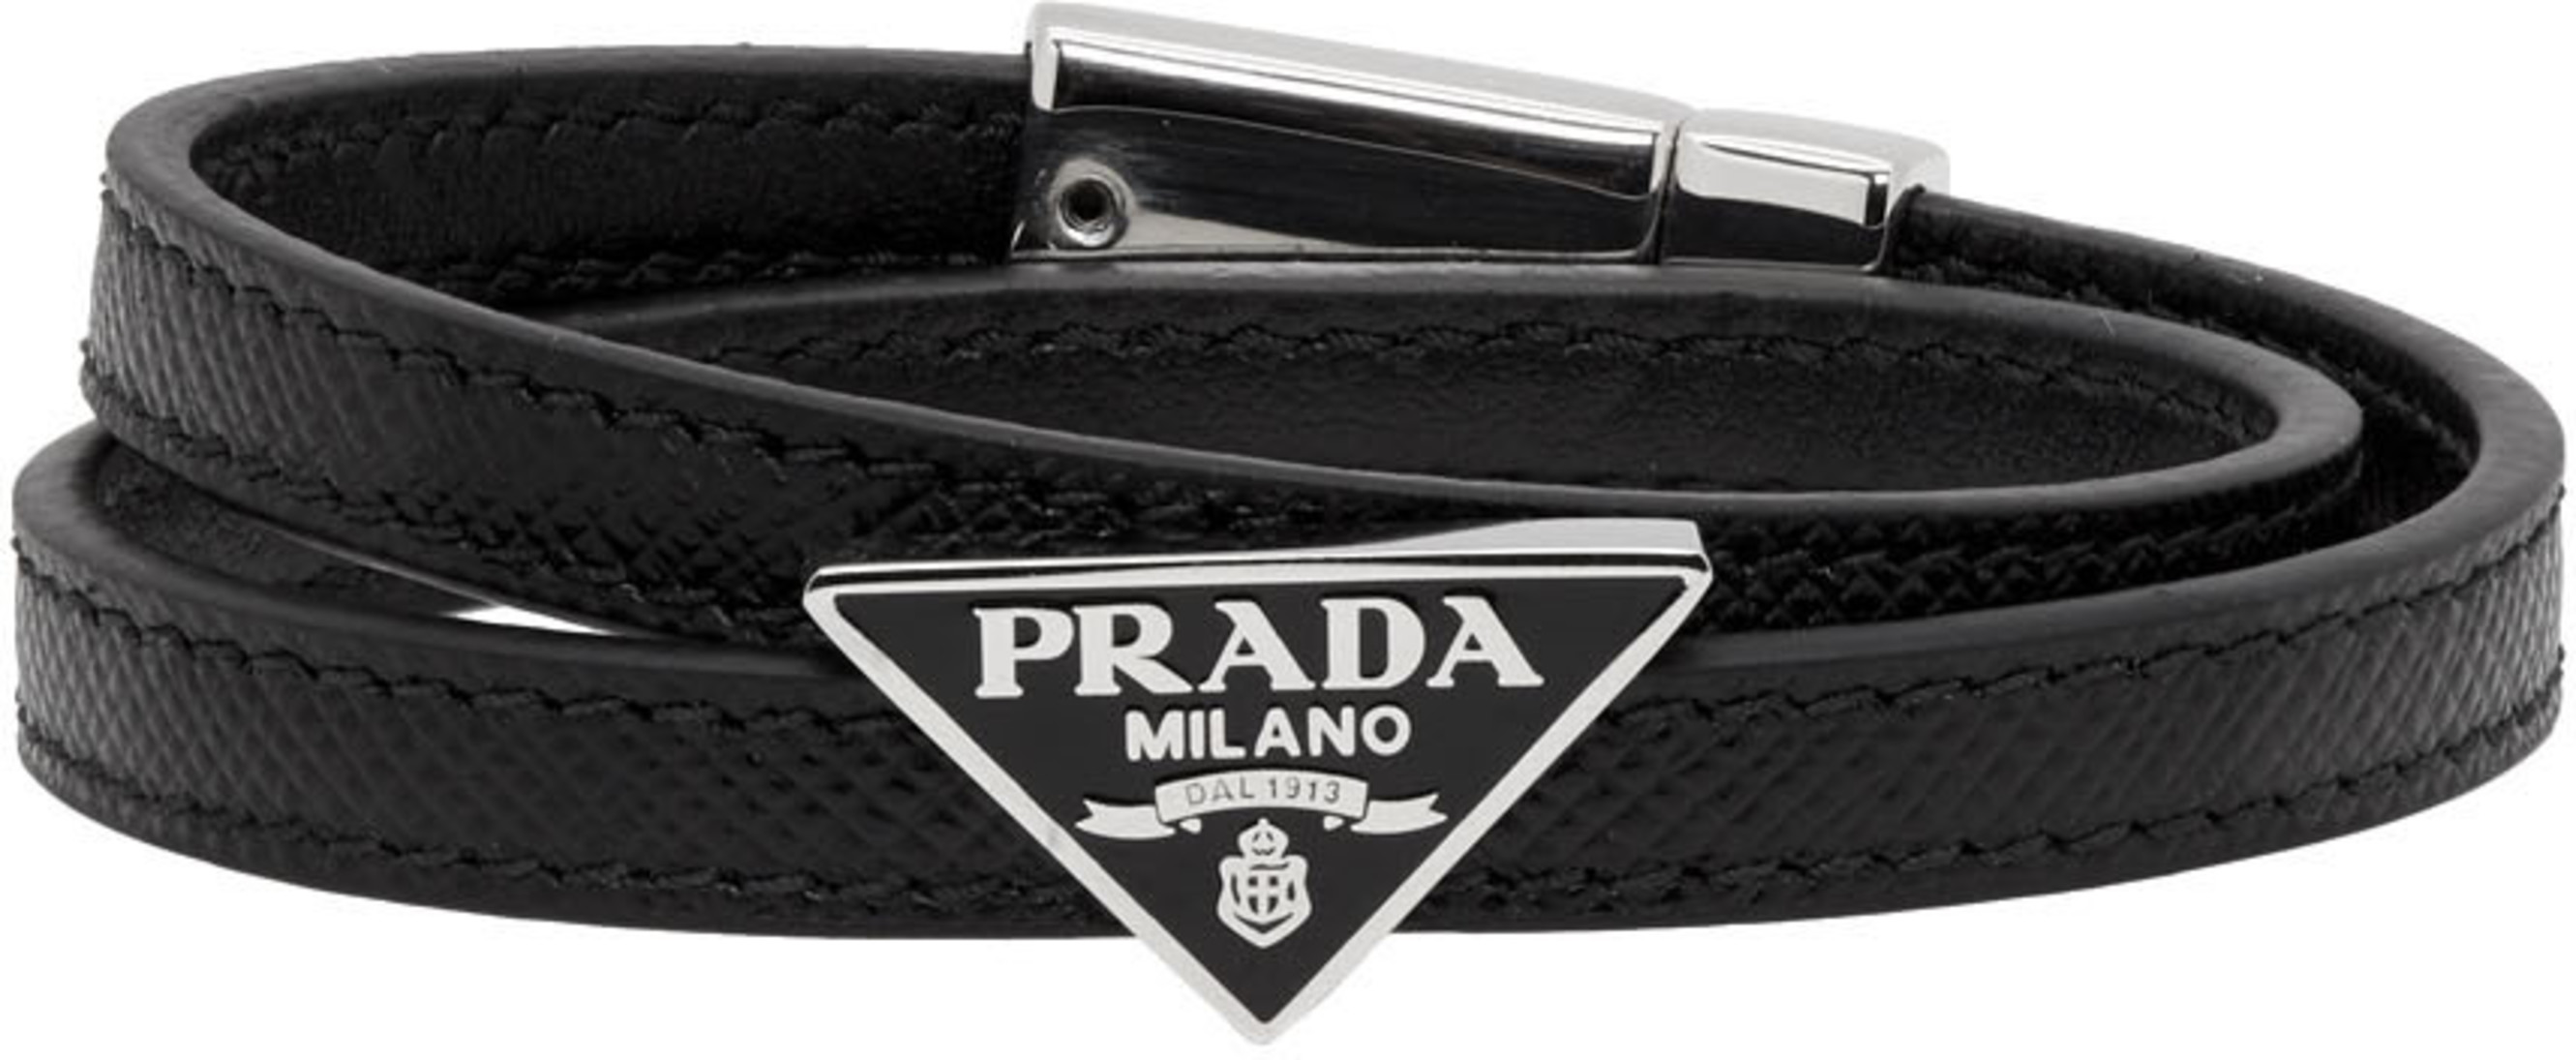 54669c2eb1b1bb Prada for Men SS19 Collection | SSENSE